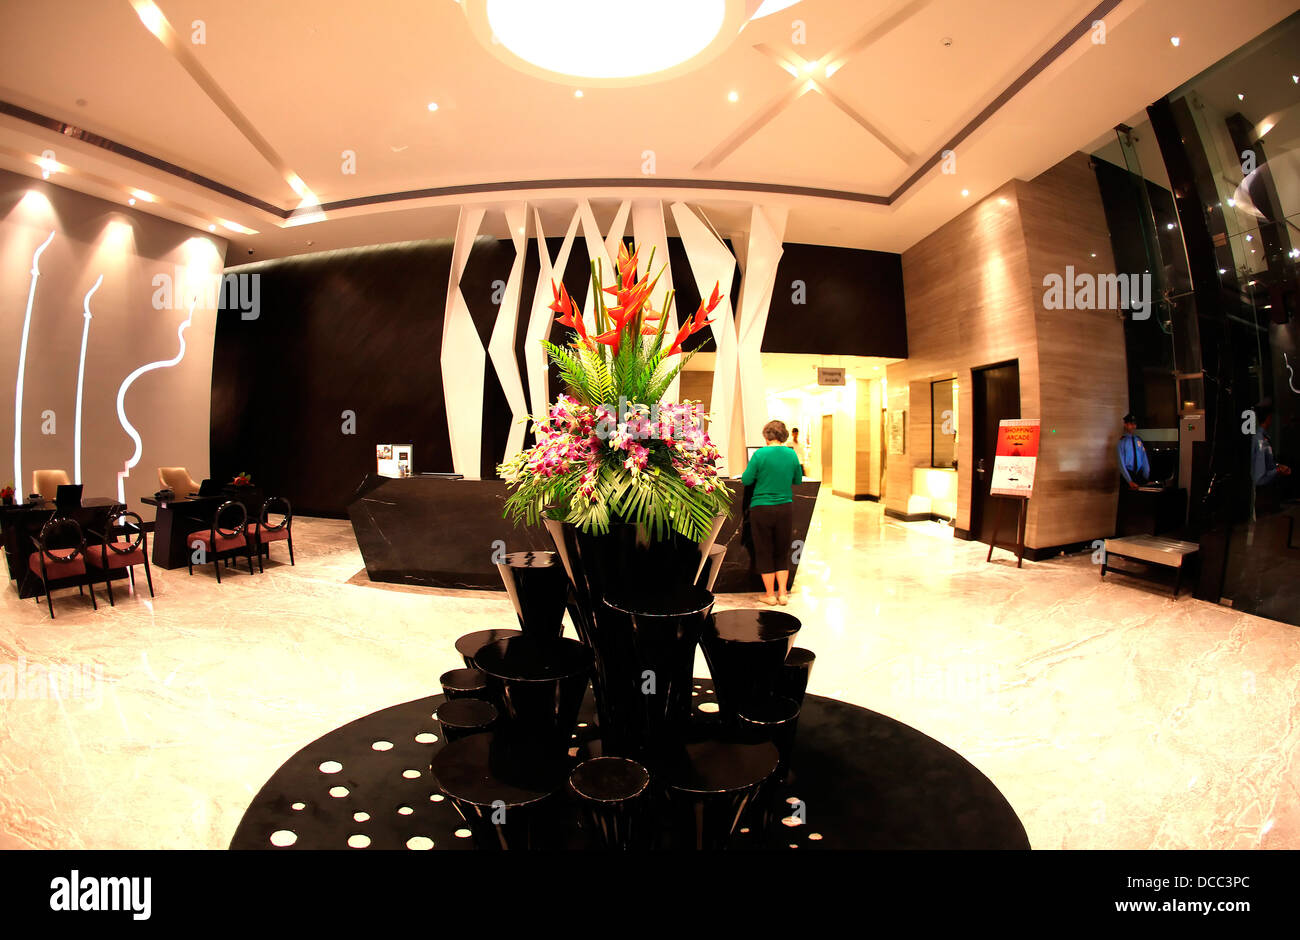 hotel radisson blu interior Agra India hospitality,lobby,fixtures,furniture,modern,elegant,illuminated - Stock Image